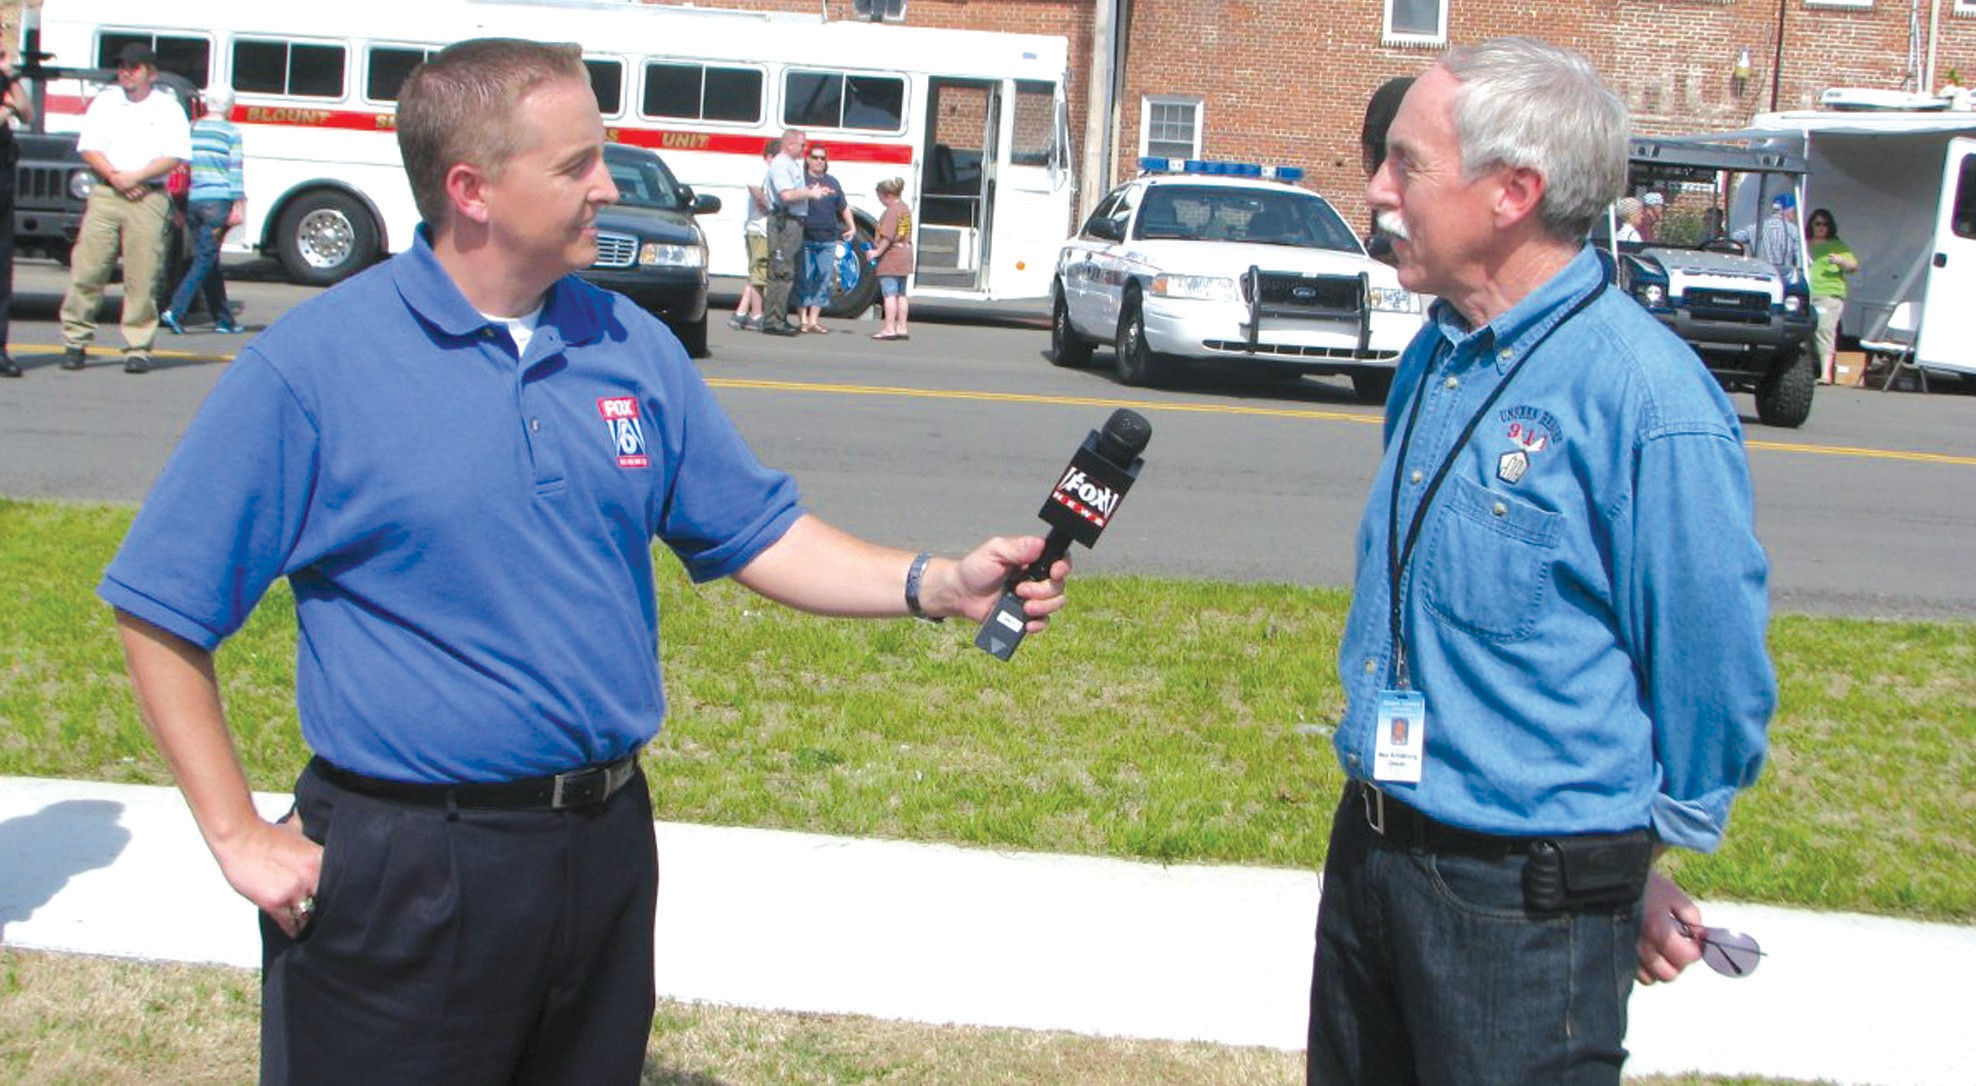 Fox 6 meteorologist Wes Wyatt talks to Blount County Emergency Management director Max Armstrong during Saturday's Safety Fair. The event is sponsored by the Oneonta Public Library and director Gail Sheldon said that attendance this year was more than double that of last year's inaugural event. Great weather – sunny skies and temperatures in the 70s – certainly made things comfortable for fair-goers. There were plenty of emergency vehicles that could be toured outside and several displays set up in the library, including a piece of metal from the World Trade Center towers that is part of a 9/11 tour. Several agencies – especially police and fire personnel – contributed to the event. – Rob Rice